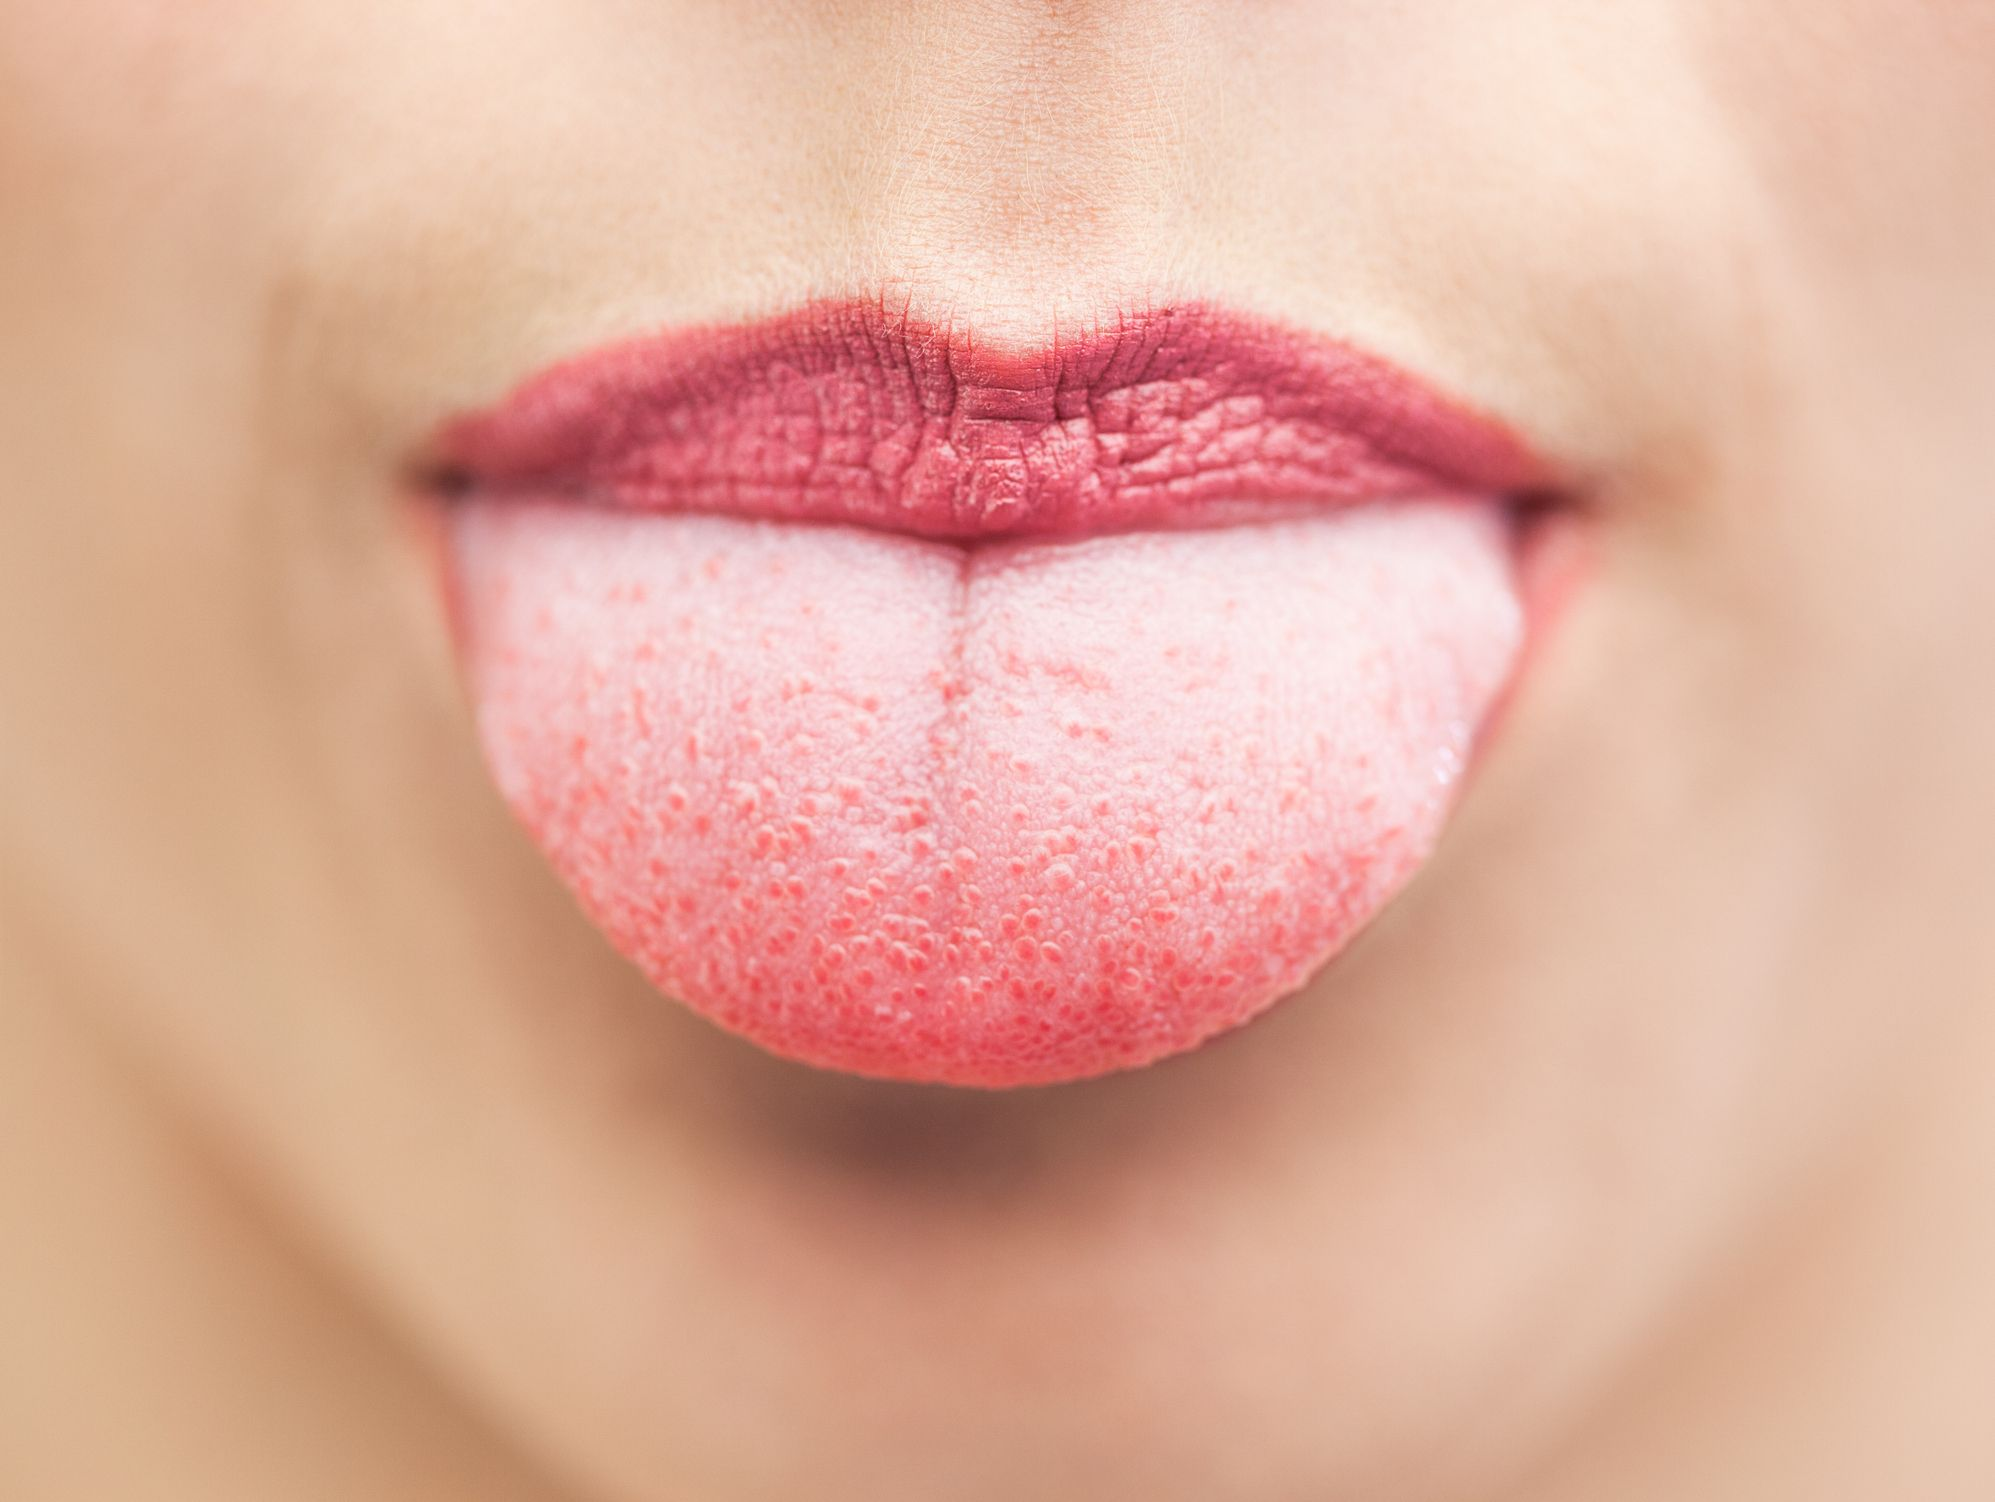 8 Causes of Inflamed, Swollen Taste Buds, According to Doctors